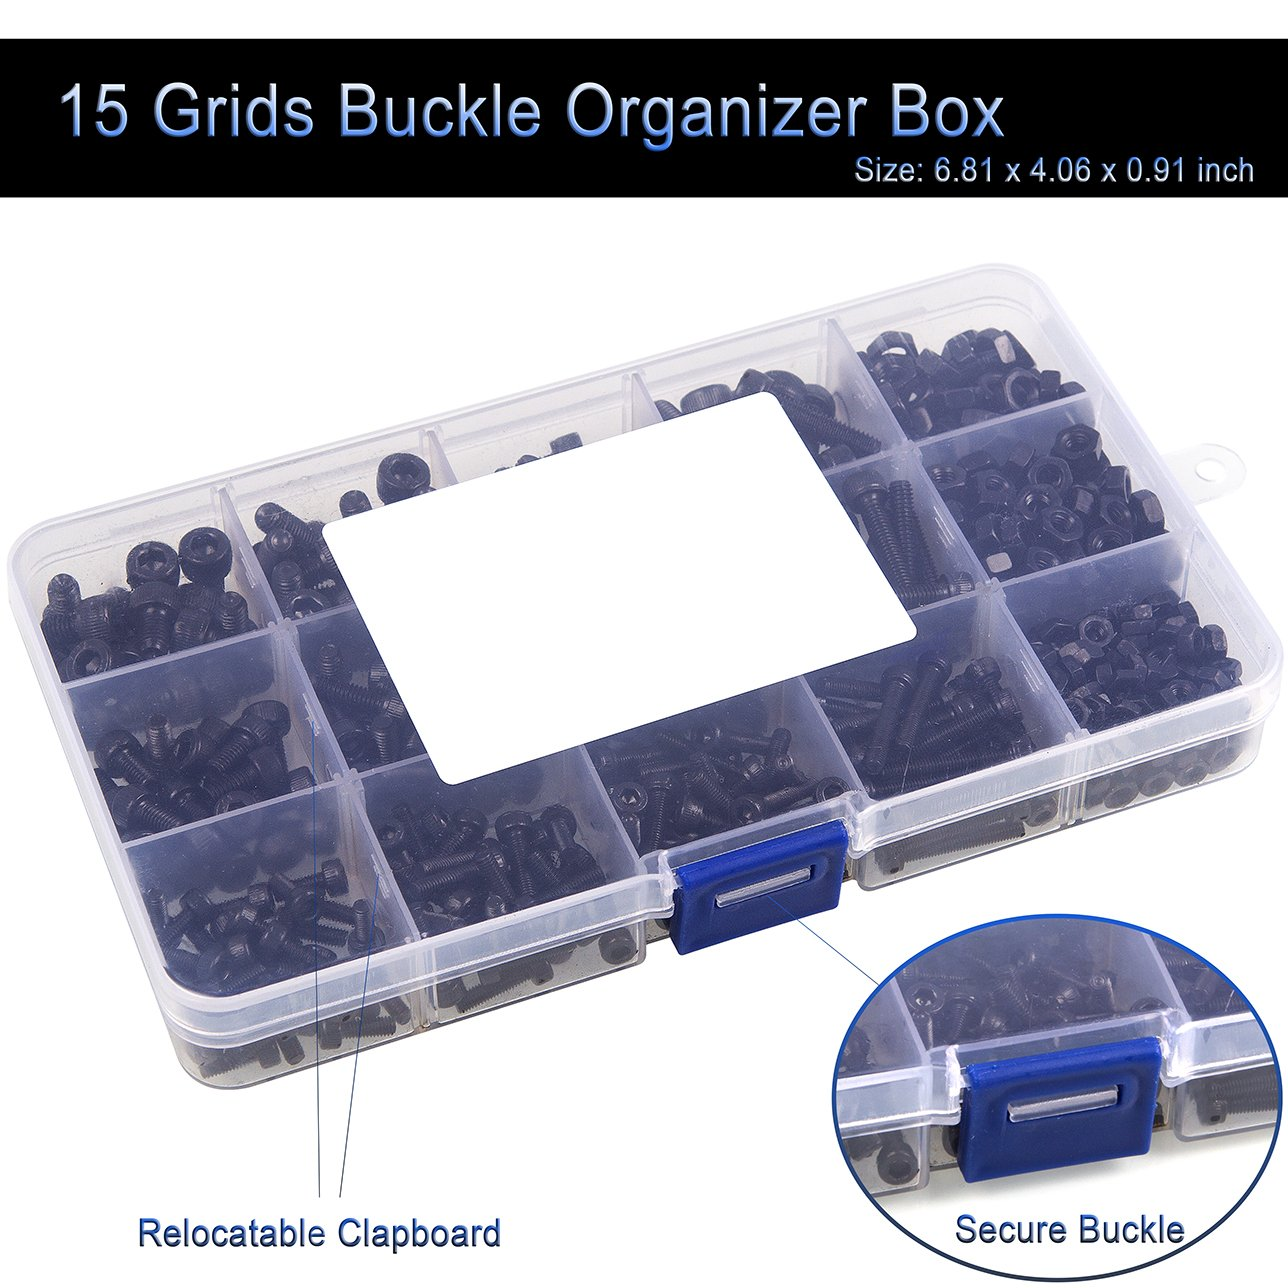 DIN912 High Strength 12.9 Carbon Steel Fasteners Tool Kit ADVcer 500pcs Hex Socket Head Cap Screws Bolts and Nuts Set with 15 Grids Assortment Box Black Oxide Finish M3 M4 M5 Metric Thread Size